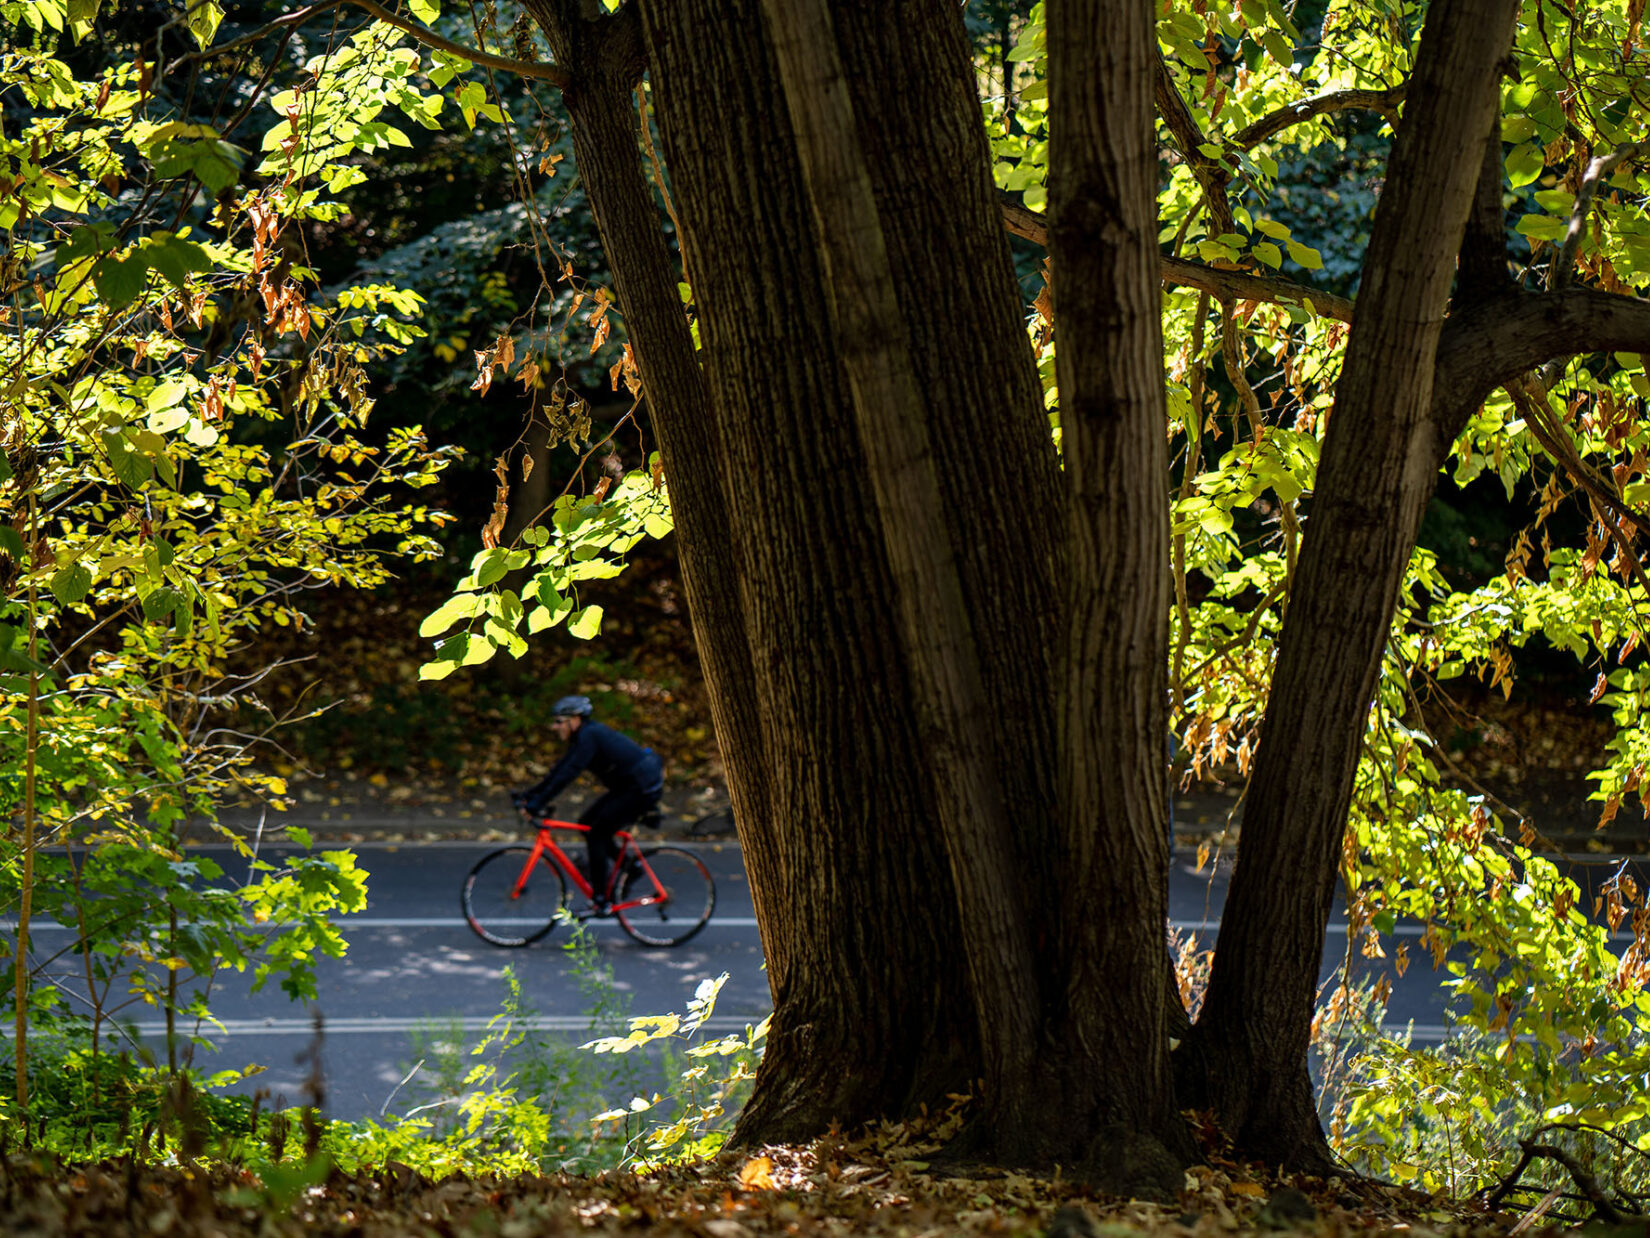 A bicyclist can be seen through the leaves and past the trunk of a large tree